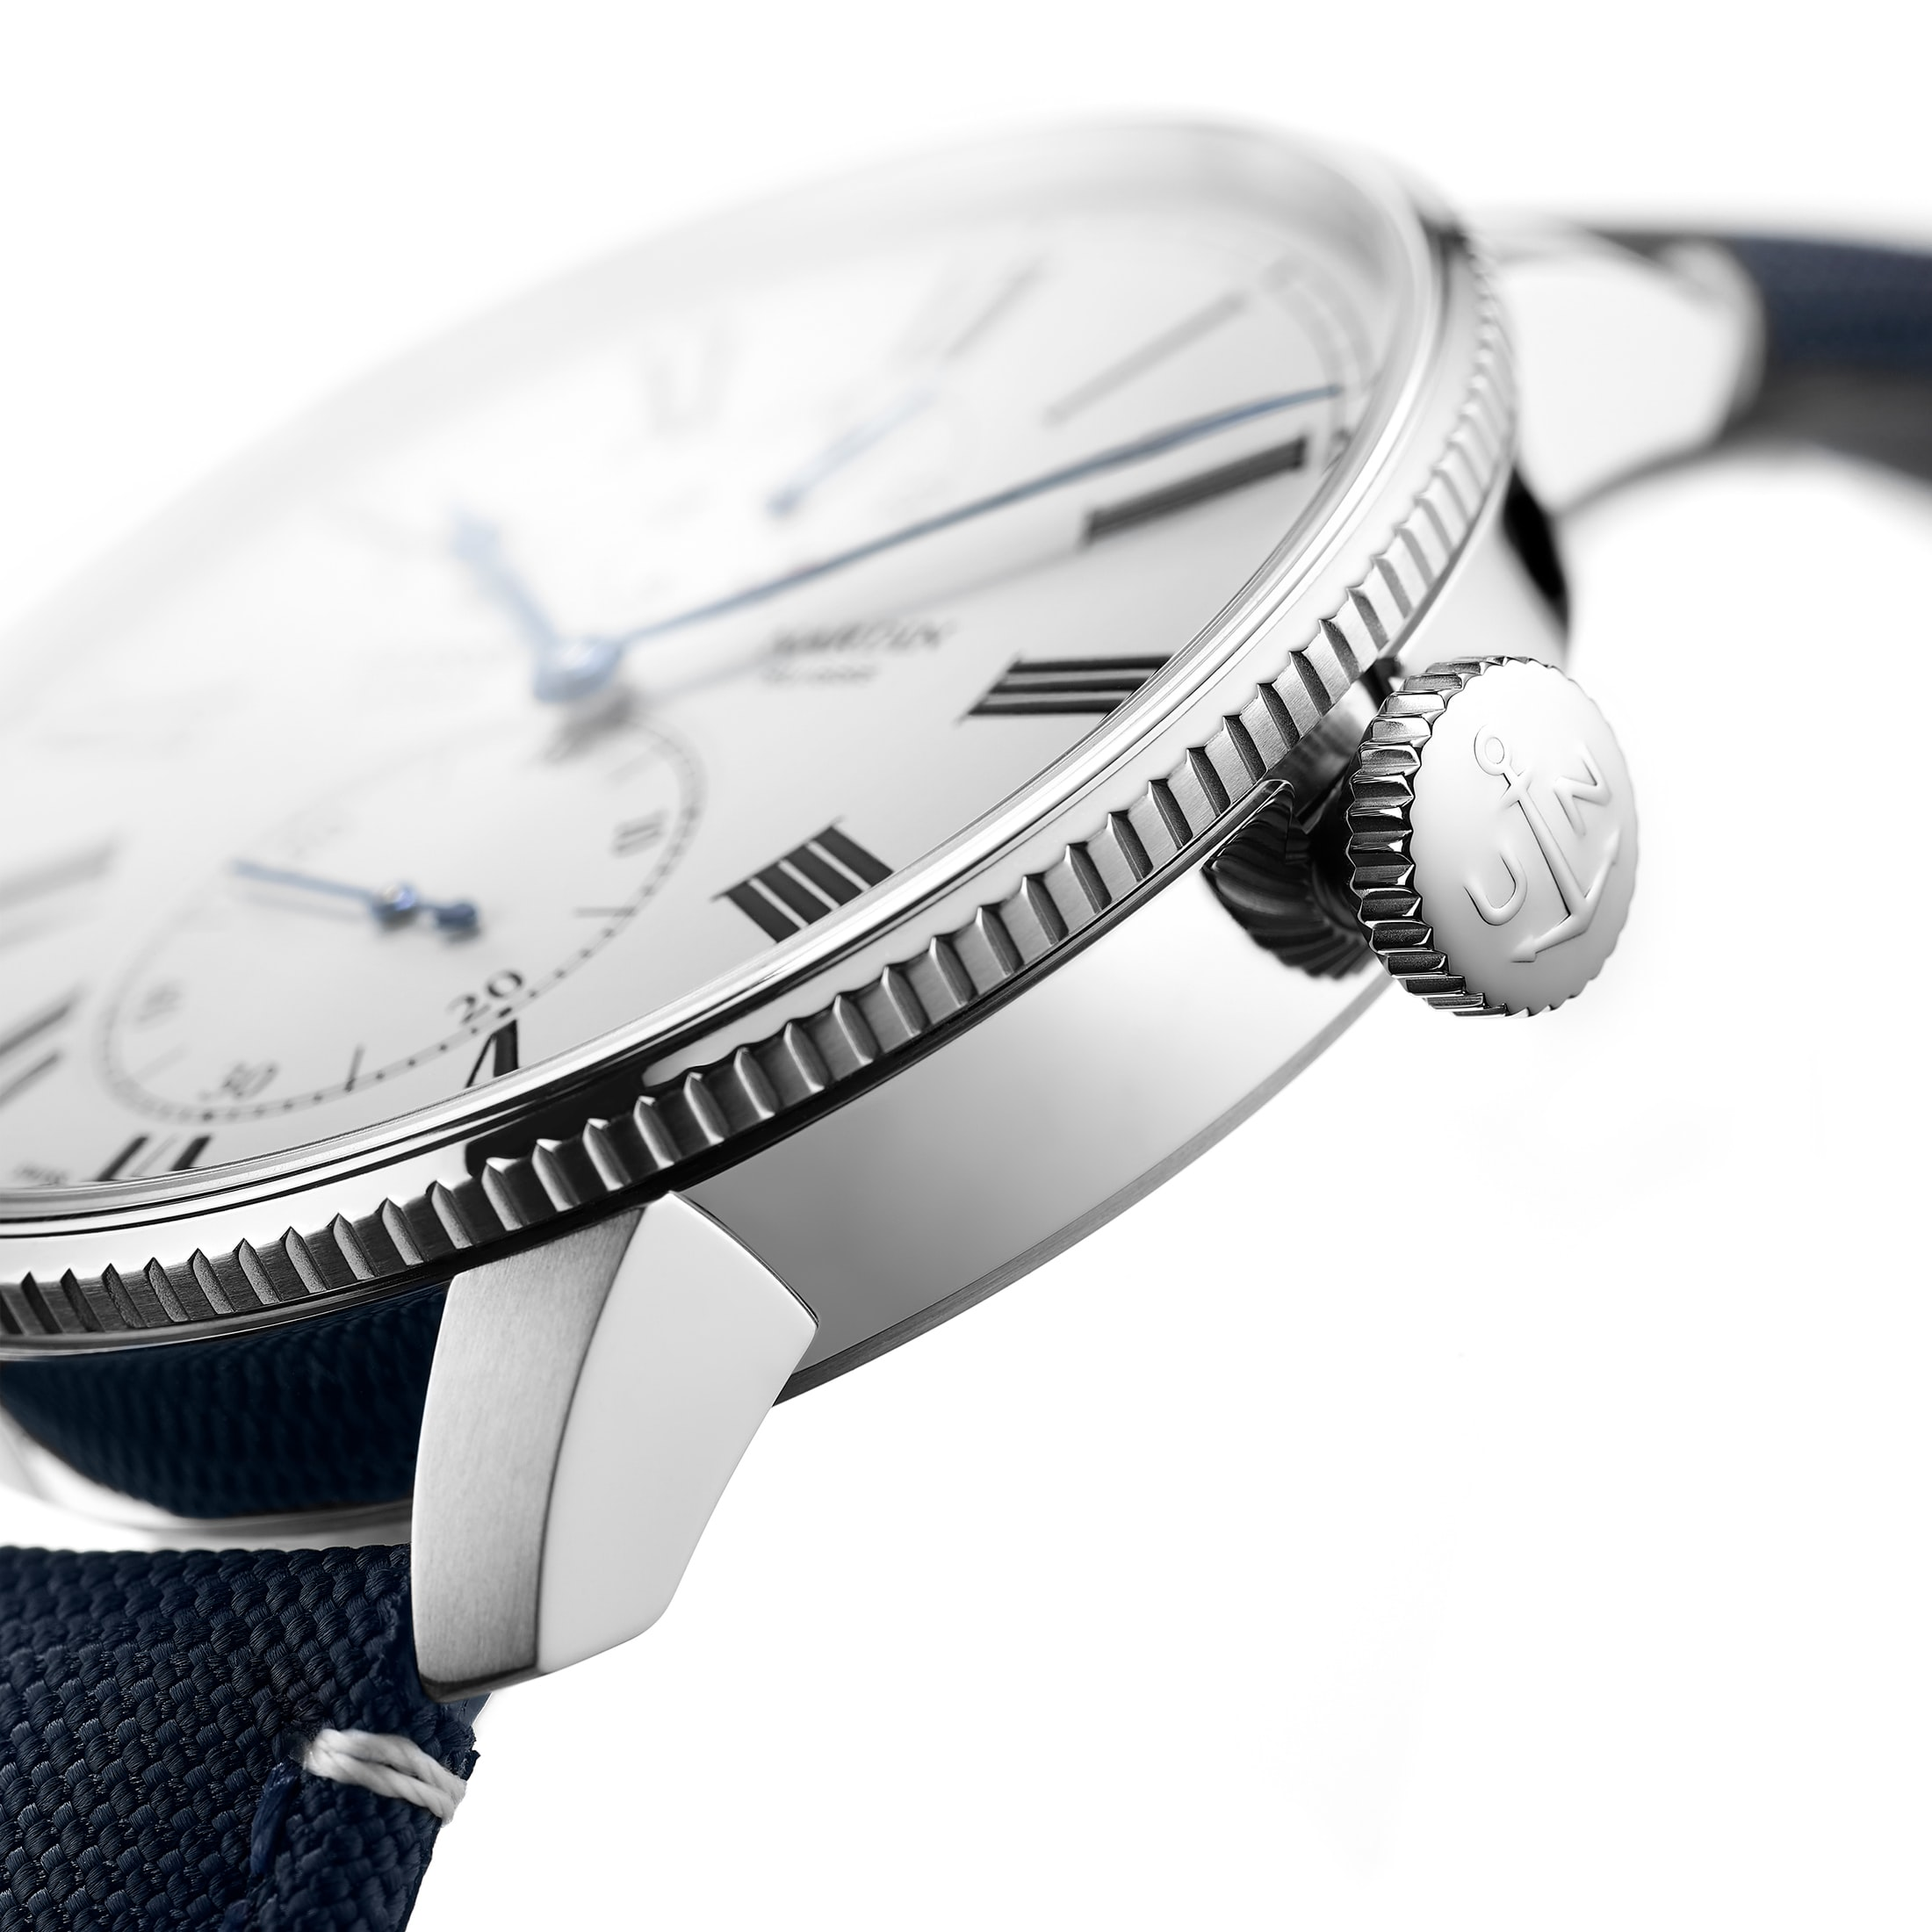 Introducing: The Ulysse Nardin Marine Torpilleur Military U.S. Navy un 1